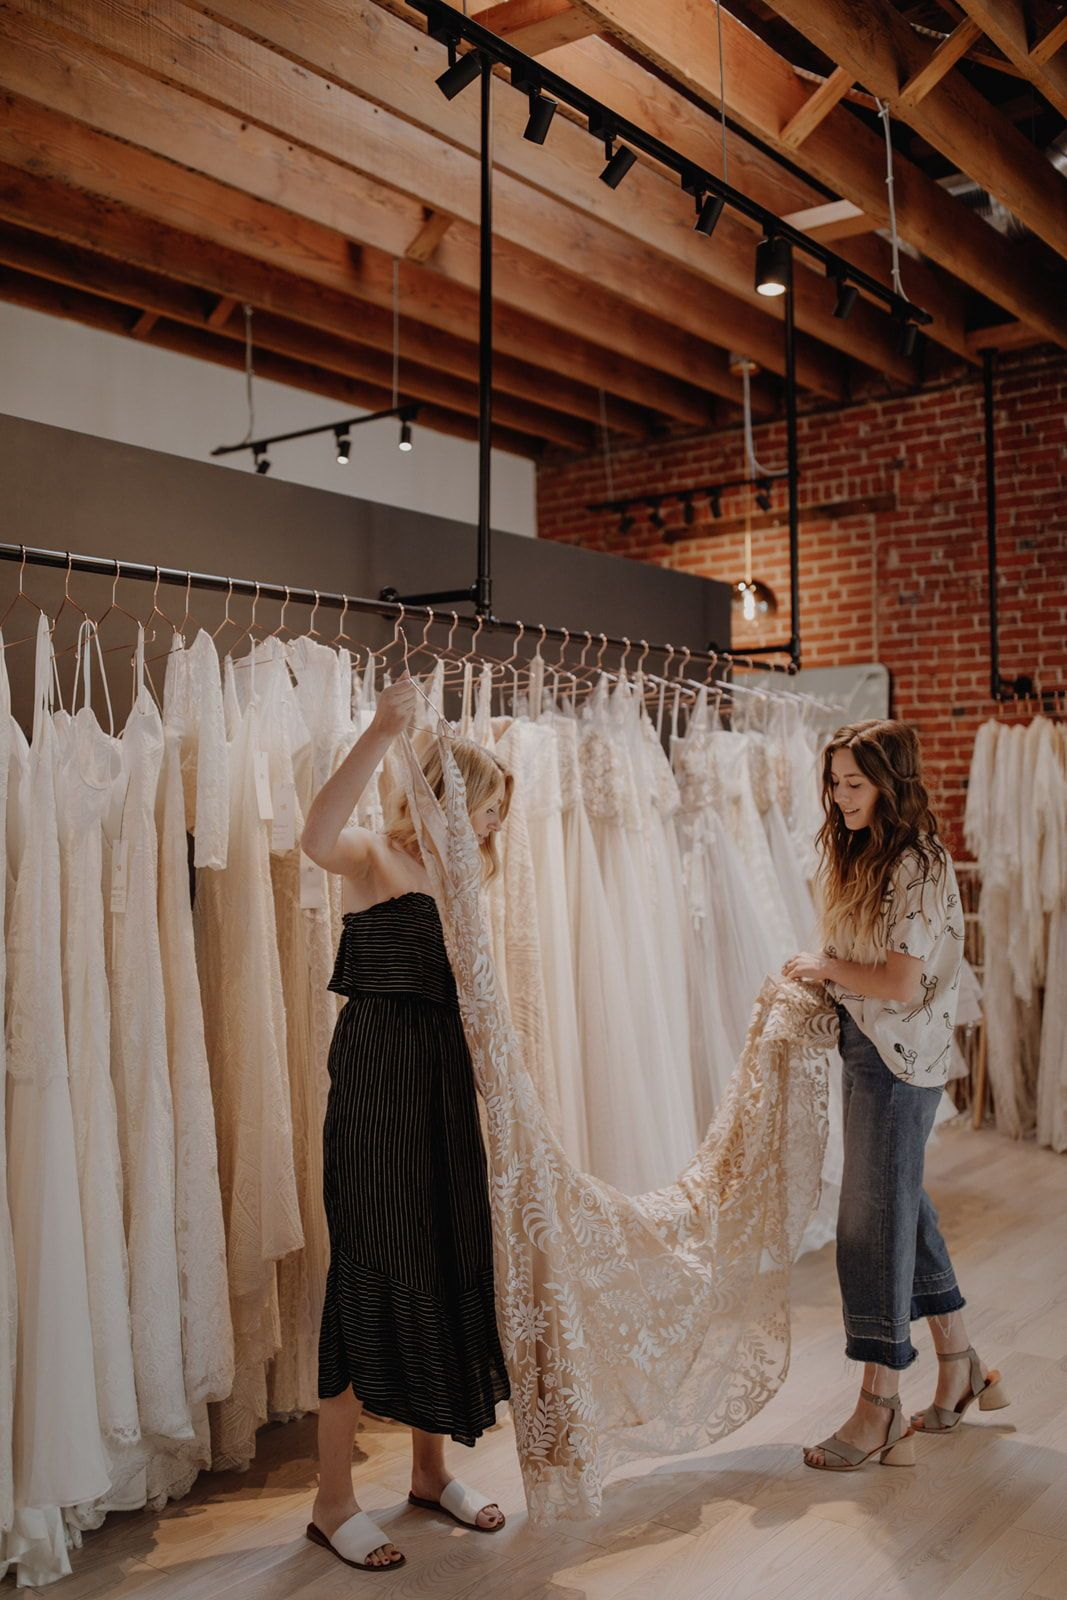 Get A Sneak Peak Into A Bridal Appointment At A Be Bridal Shop In Portland Oregon Pacific Northwes Bridal Shop Bridal Boutique Interior Bridal Shop Interior